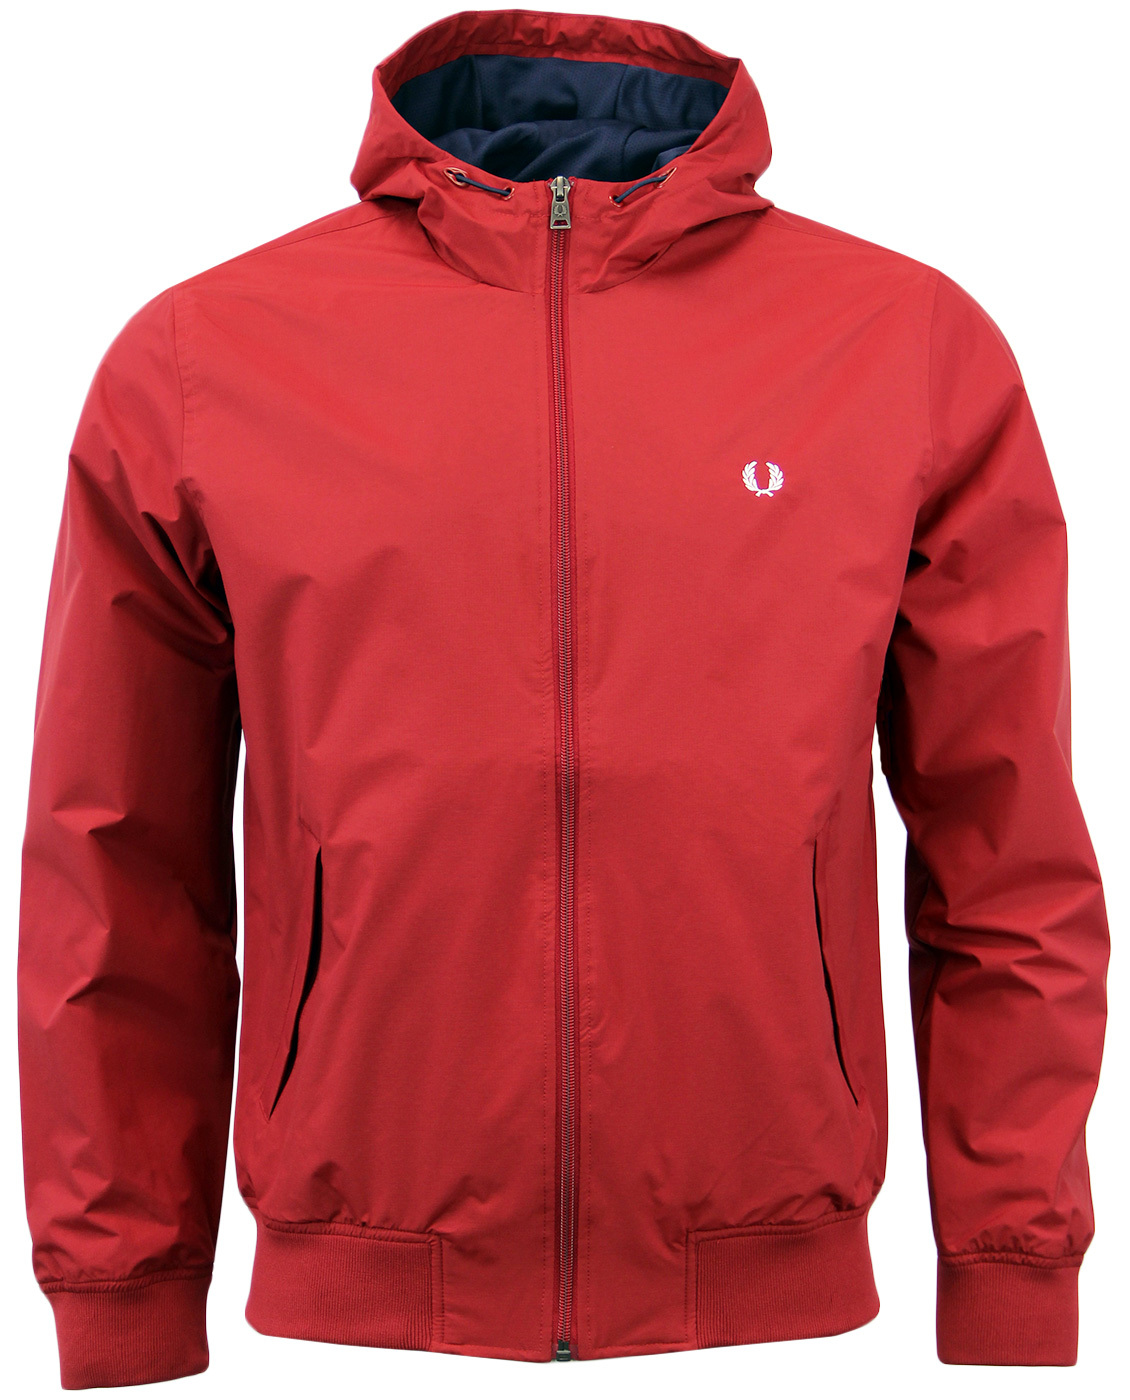 HOODED BRENTHAM JACKET J8220 A25